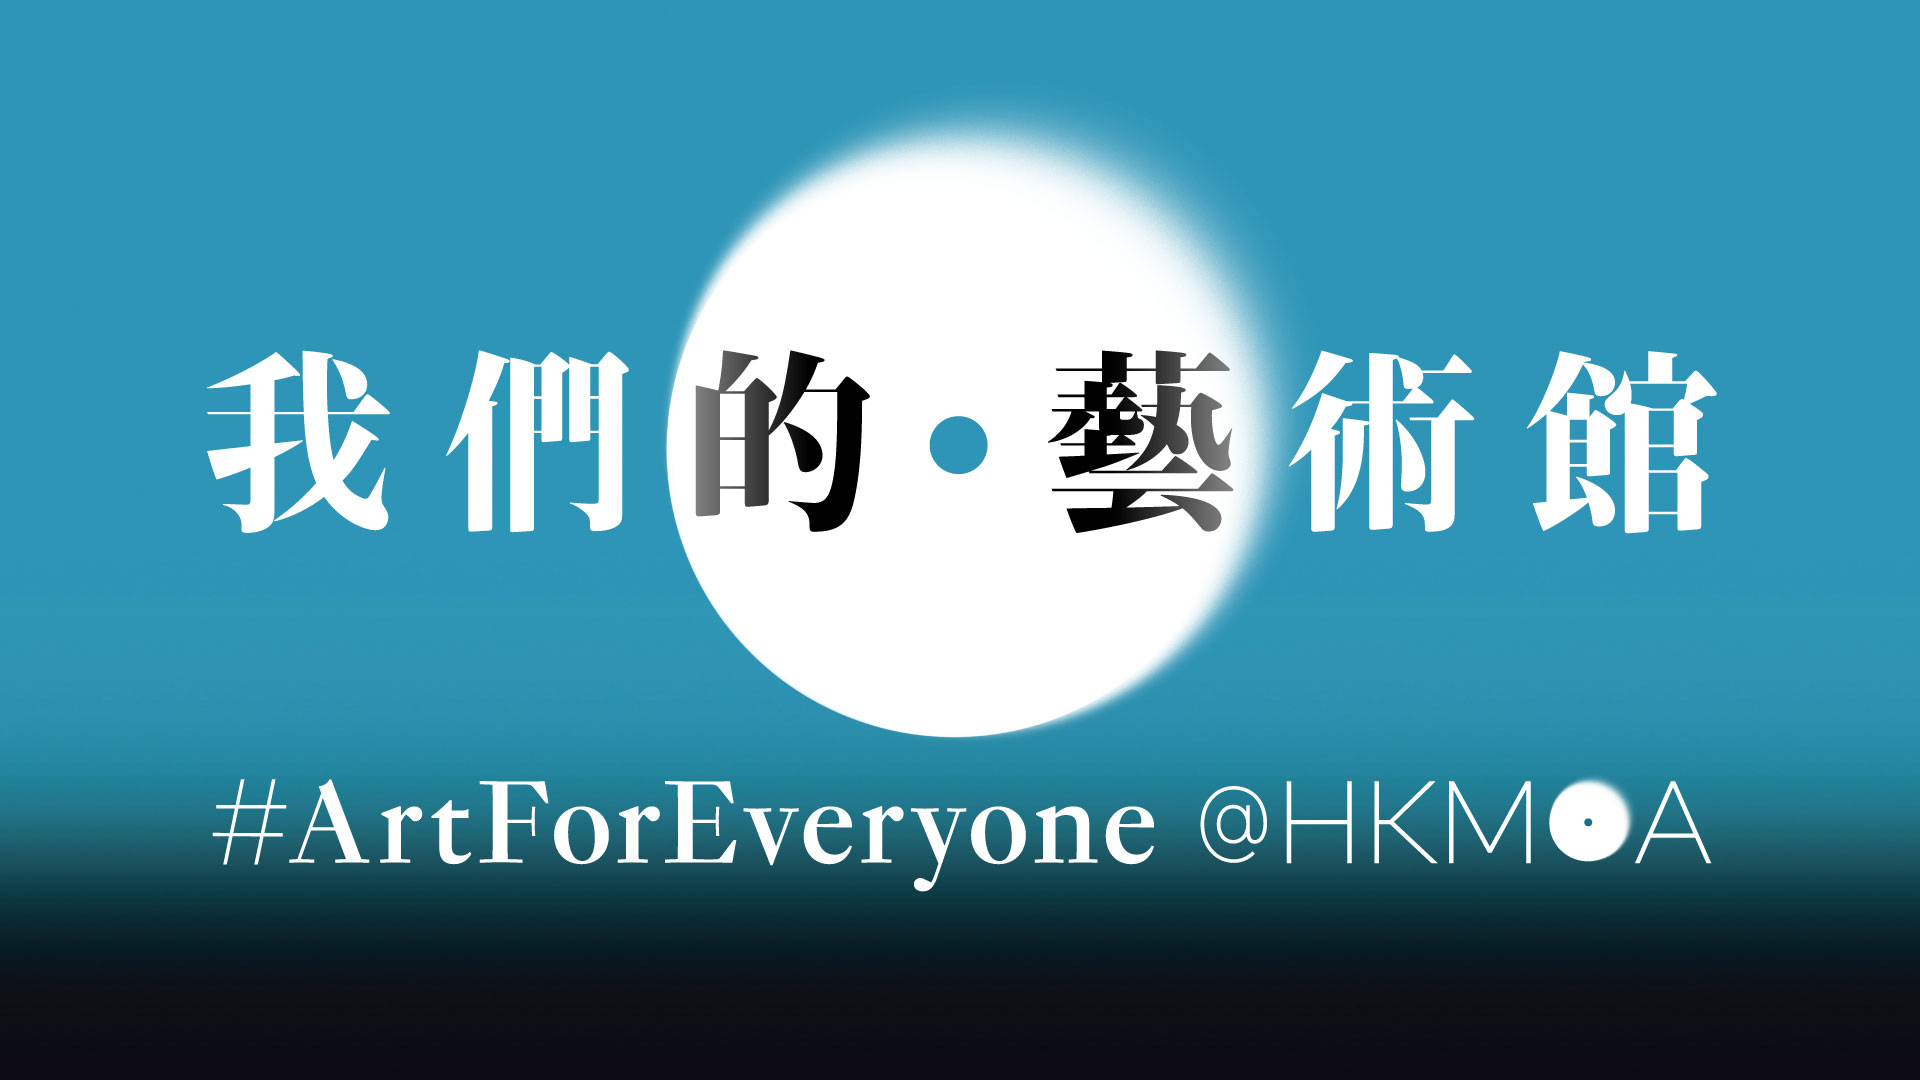 Art For Everyone @HKMoA